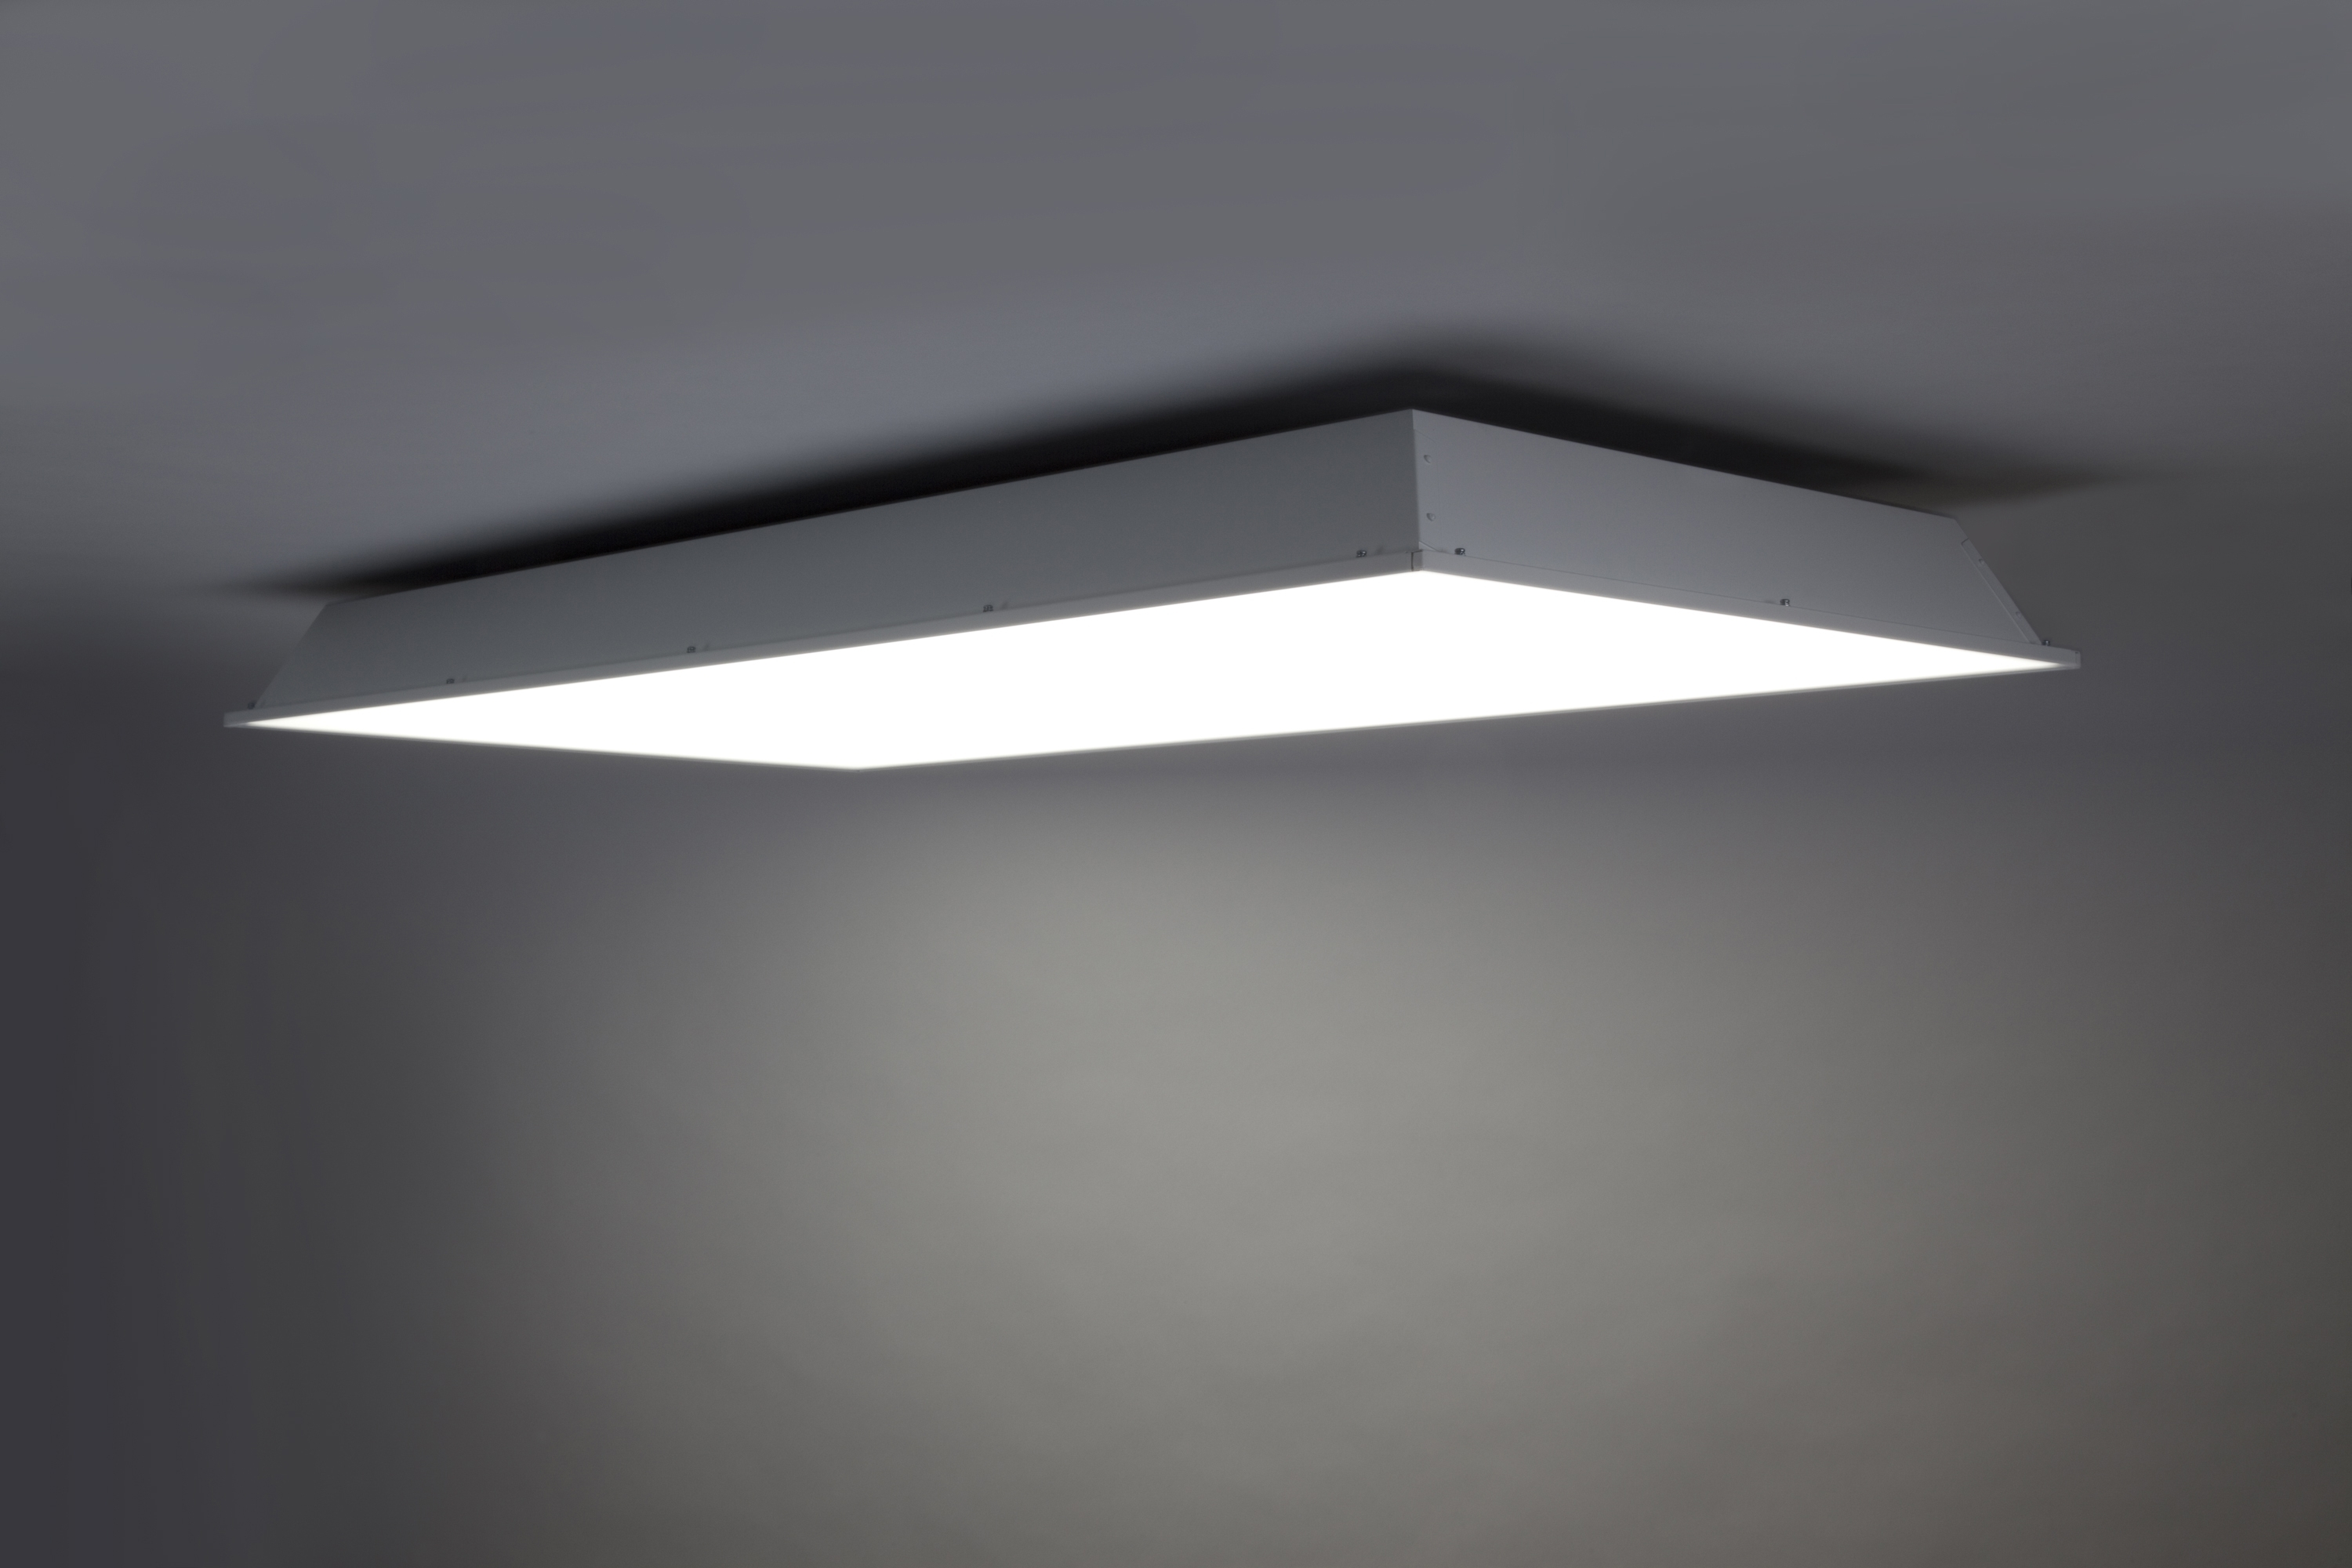 Popular Commercial Outdoor Ceiling Lighting Fixtures For Light : Led Ceiling Light Fixture Square Cool White Bathroom (View 11 of 20)